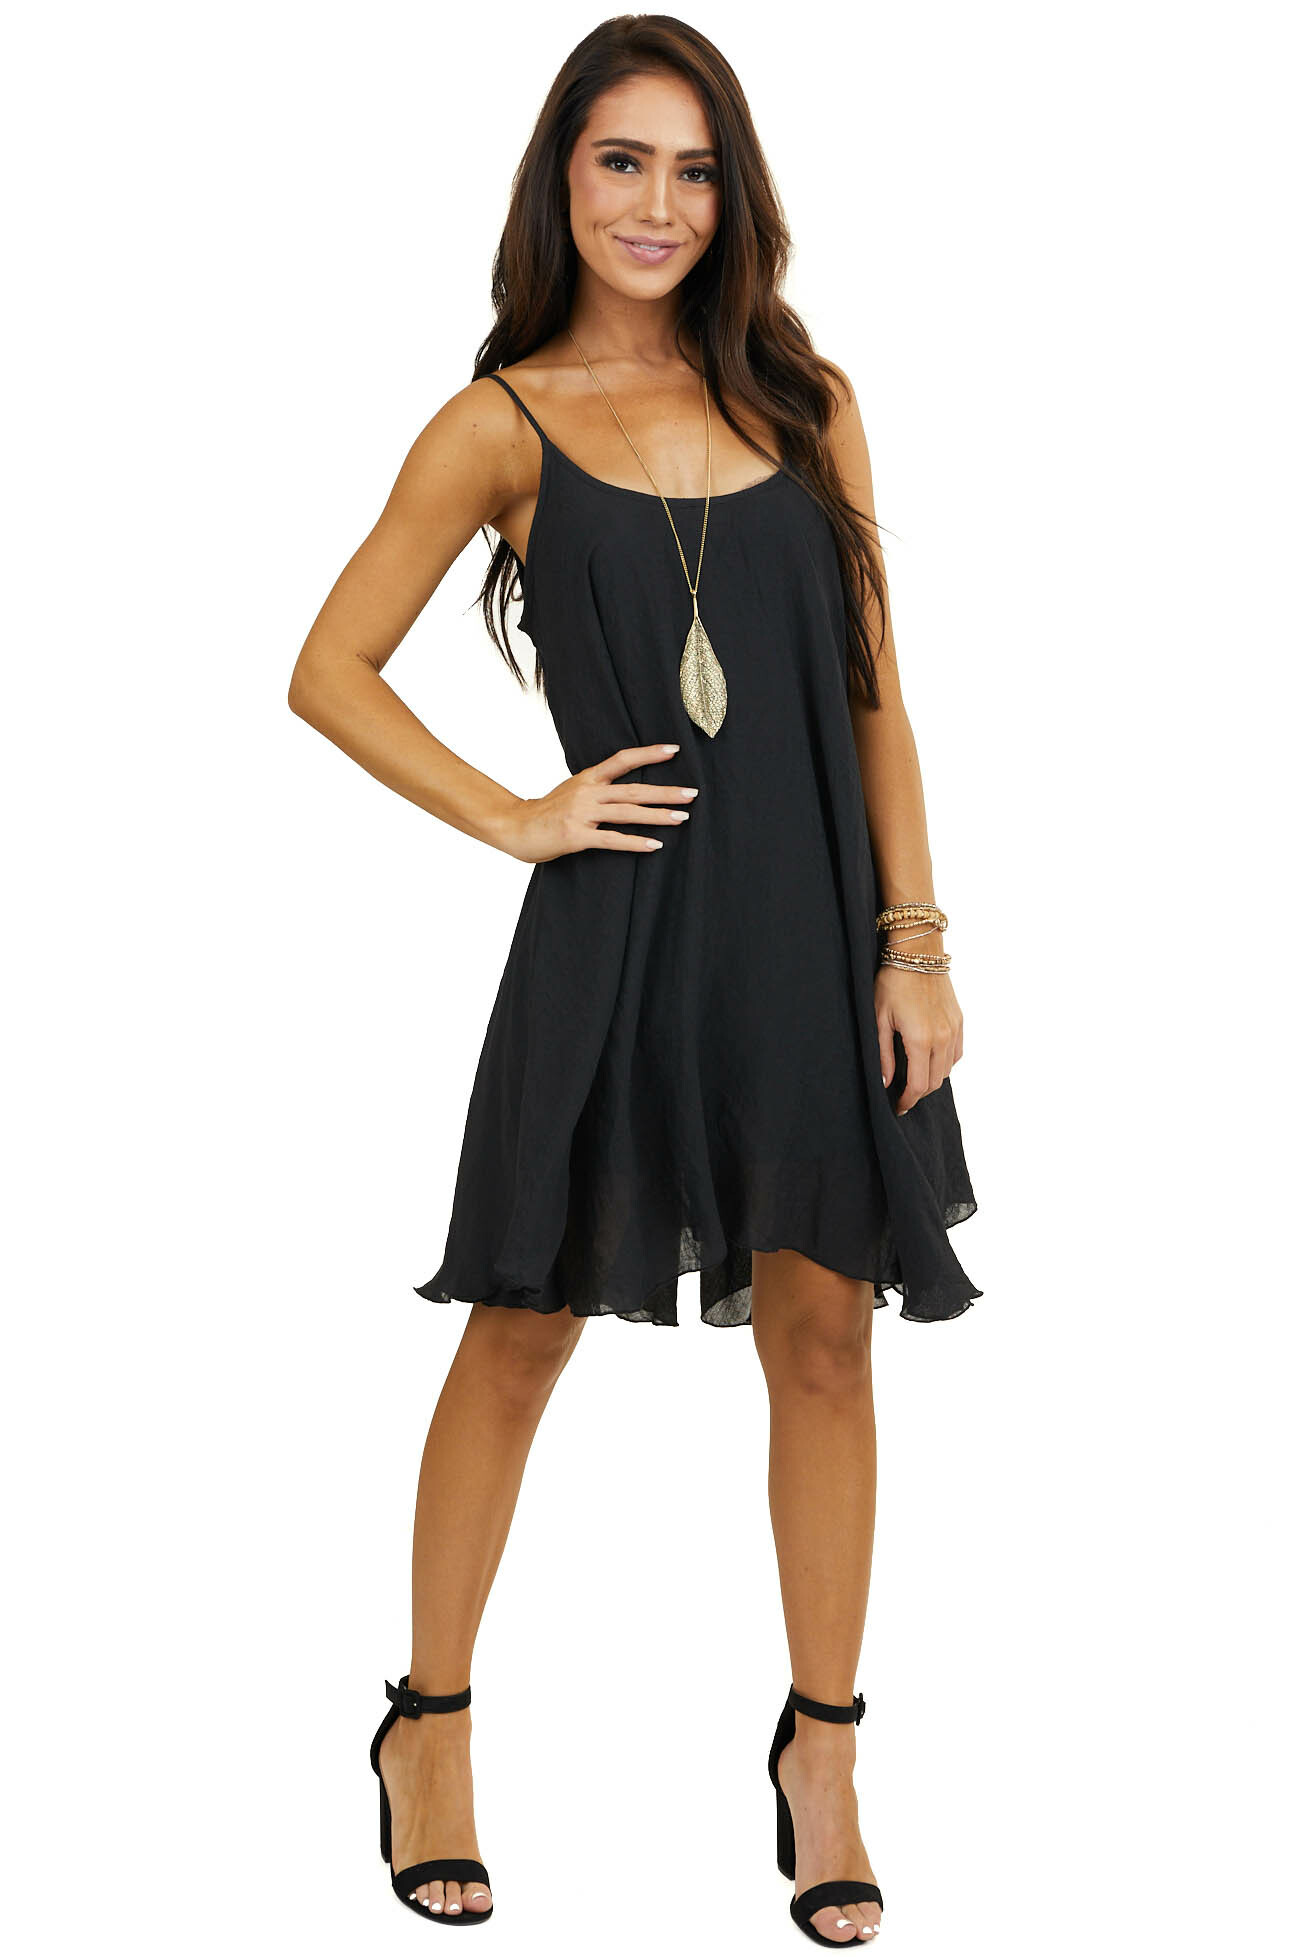 Black Woven Short Swing Dress with Spaghetti Straps